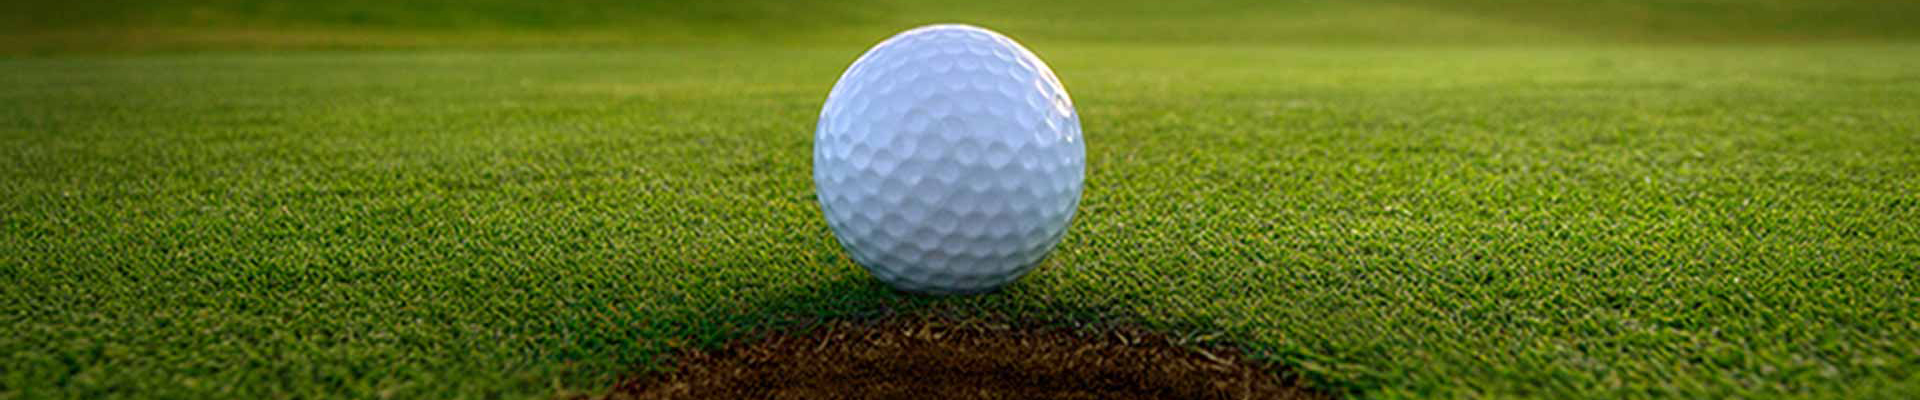 NTA Annual Golf Outing Registration